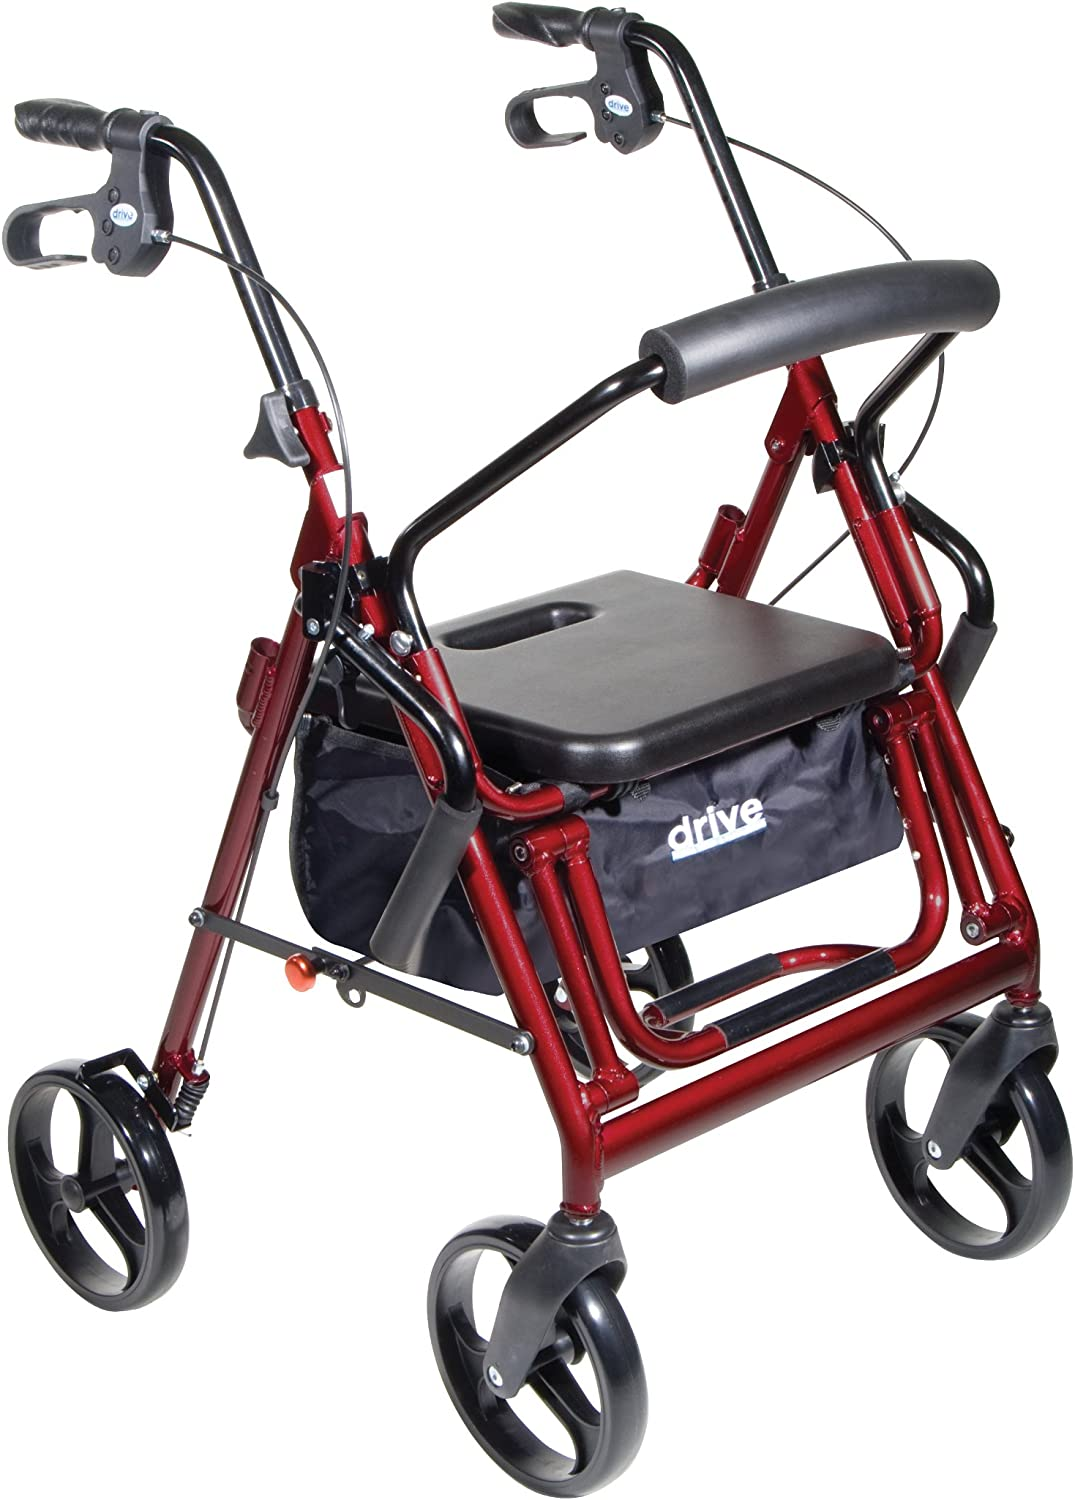 Drive Medical Duet Transport Wheelchair Rollator Walker, Burgundy: Health & Personal Care